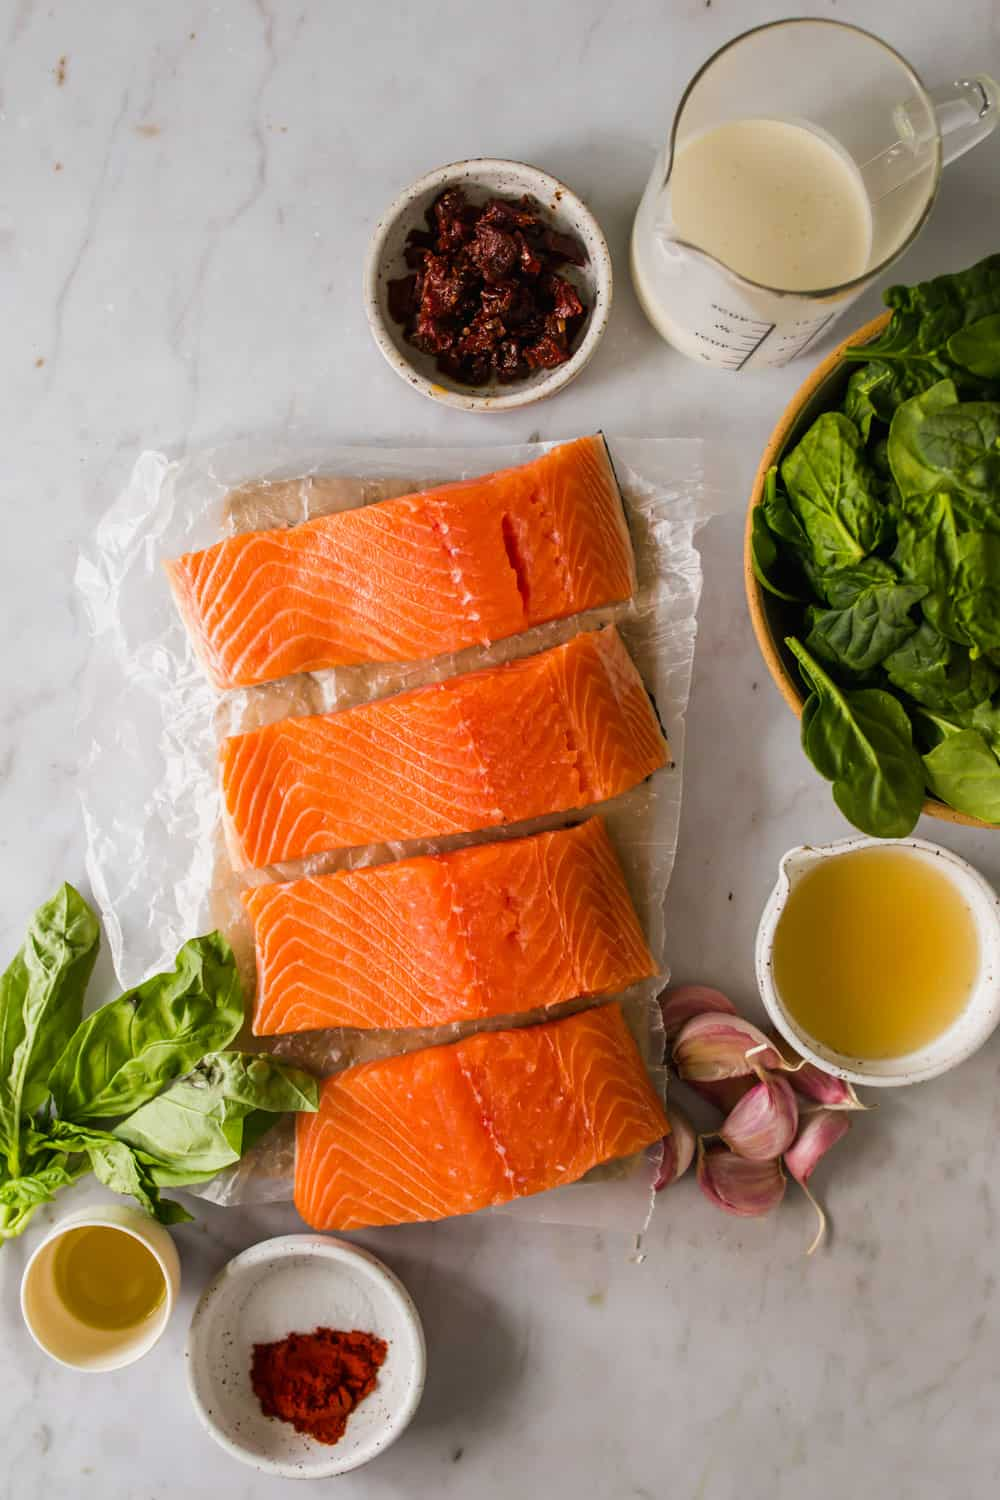 raw salmon filets on parchment paper next to bowls of salmon, broth, garlic, spices, and herbs